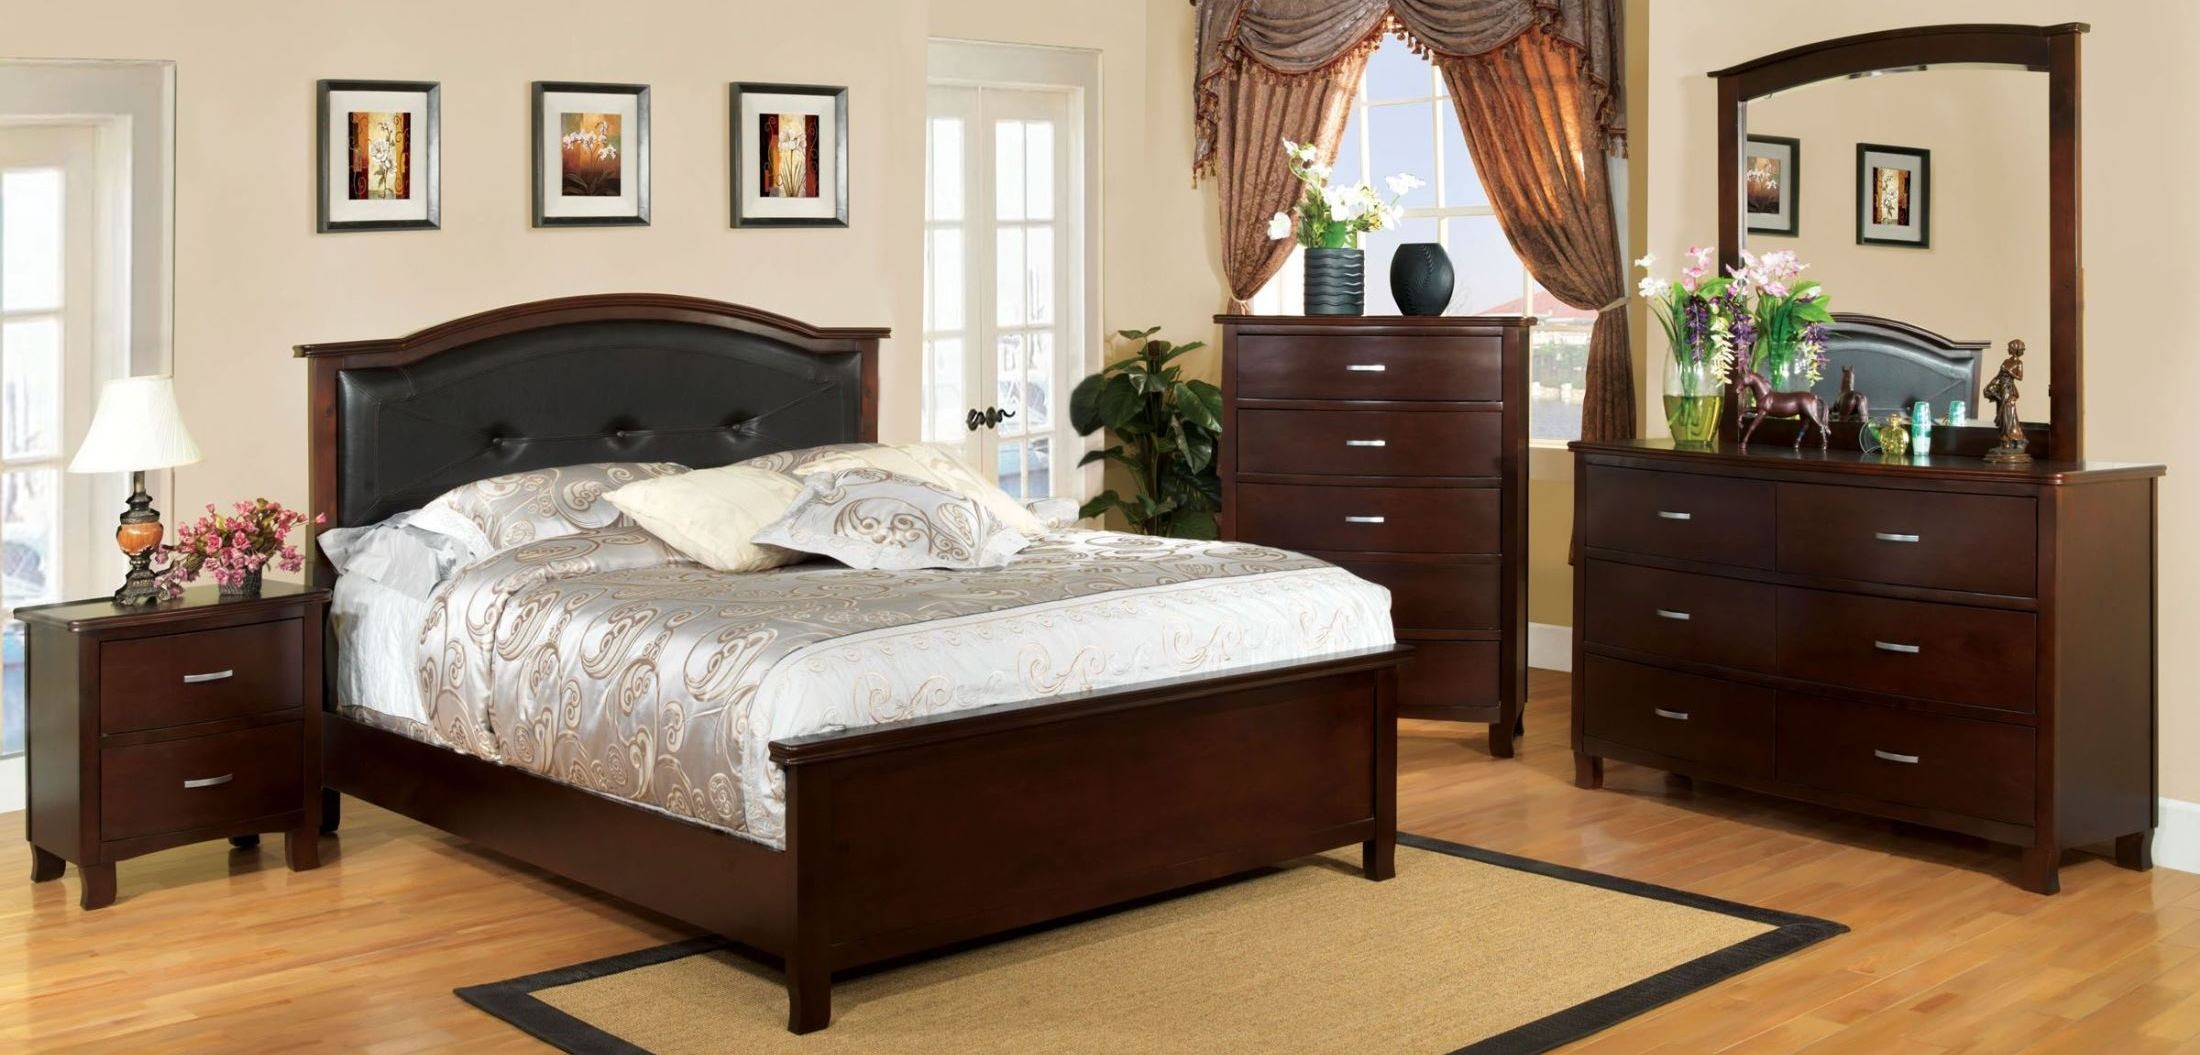 Crest view brown cherry panel bedroom set from furniture for Brown bedroom furniture